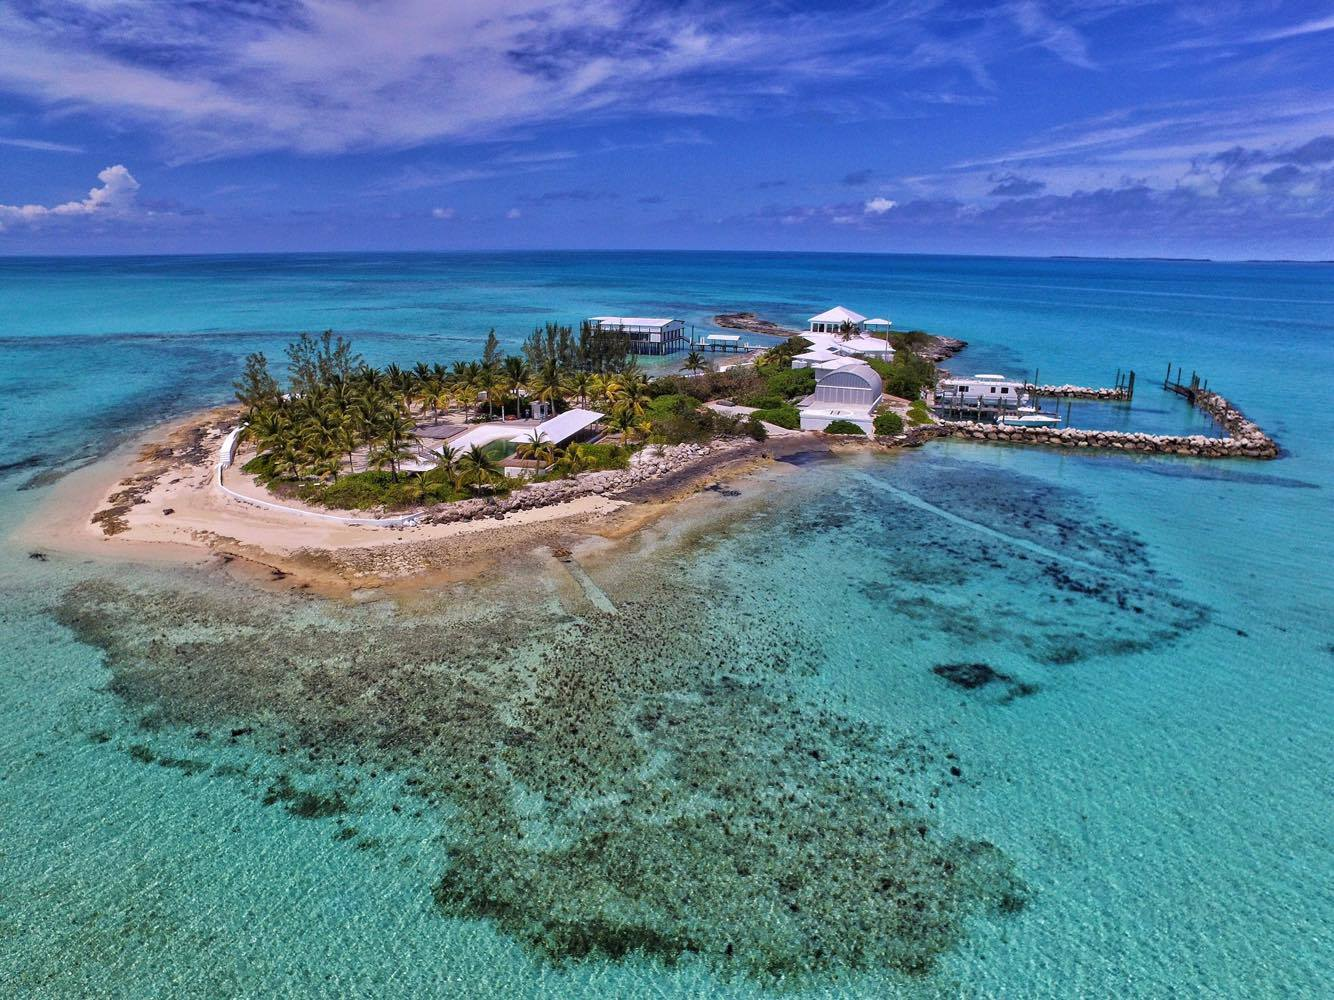 Privé-eiland voor Verkoop een t Private Island North Eleuthera - Exclusive - Unique - Exciting Commercial Possibilities! Eleuthera, Bahama Eilanden